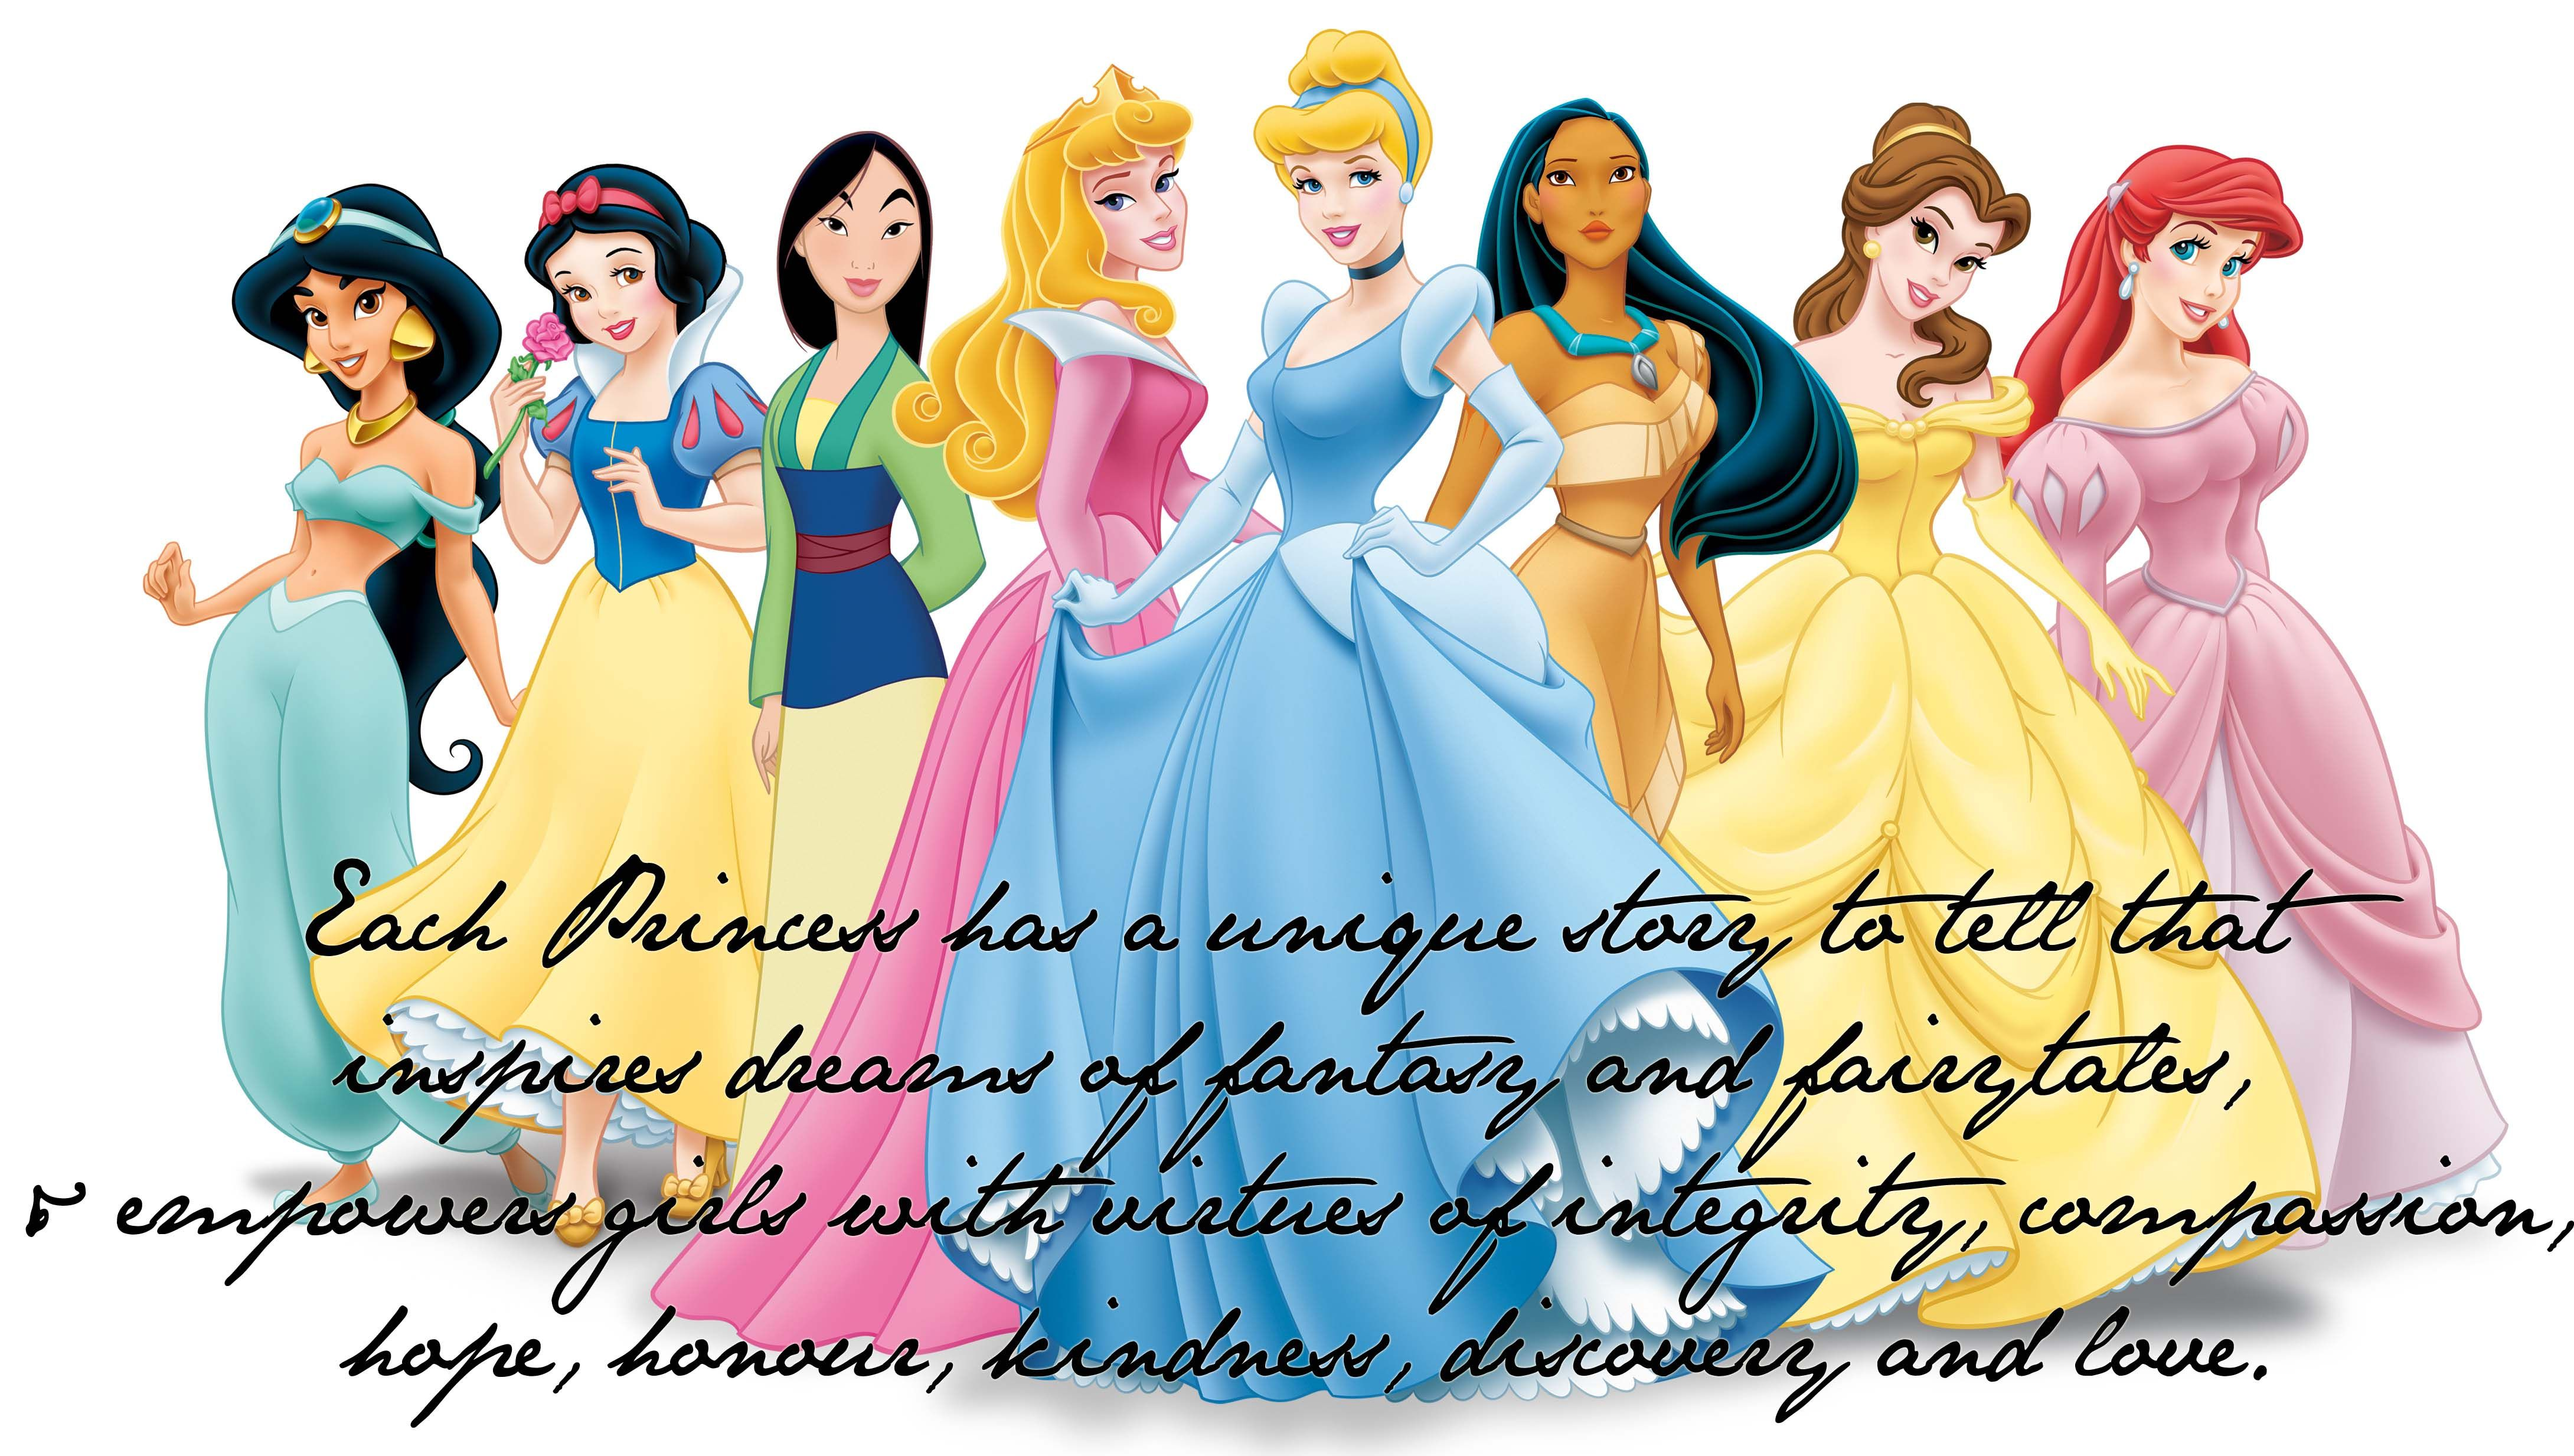 Pin By Aly L On Disney Pinterest